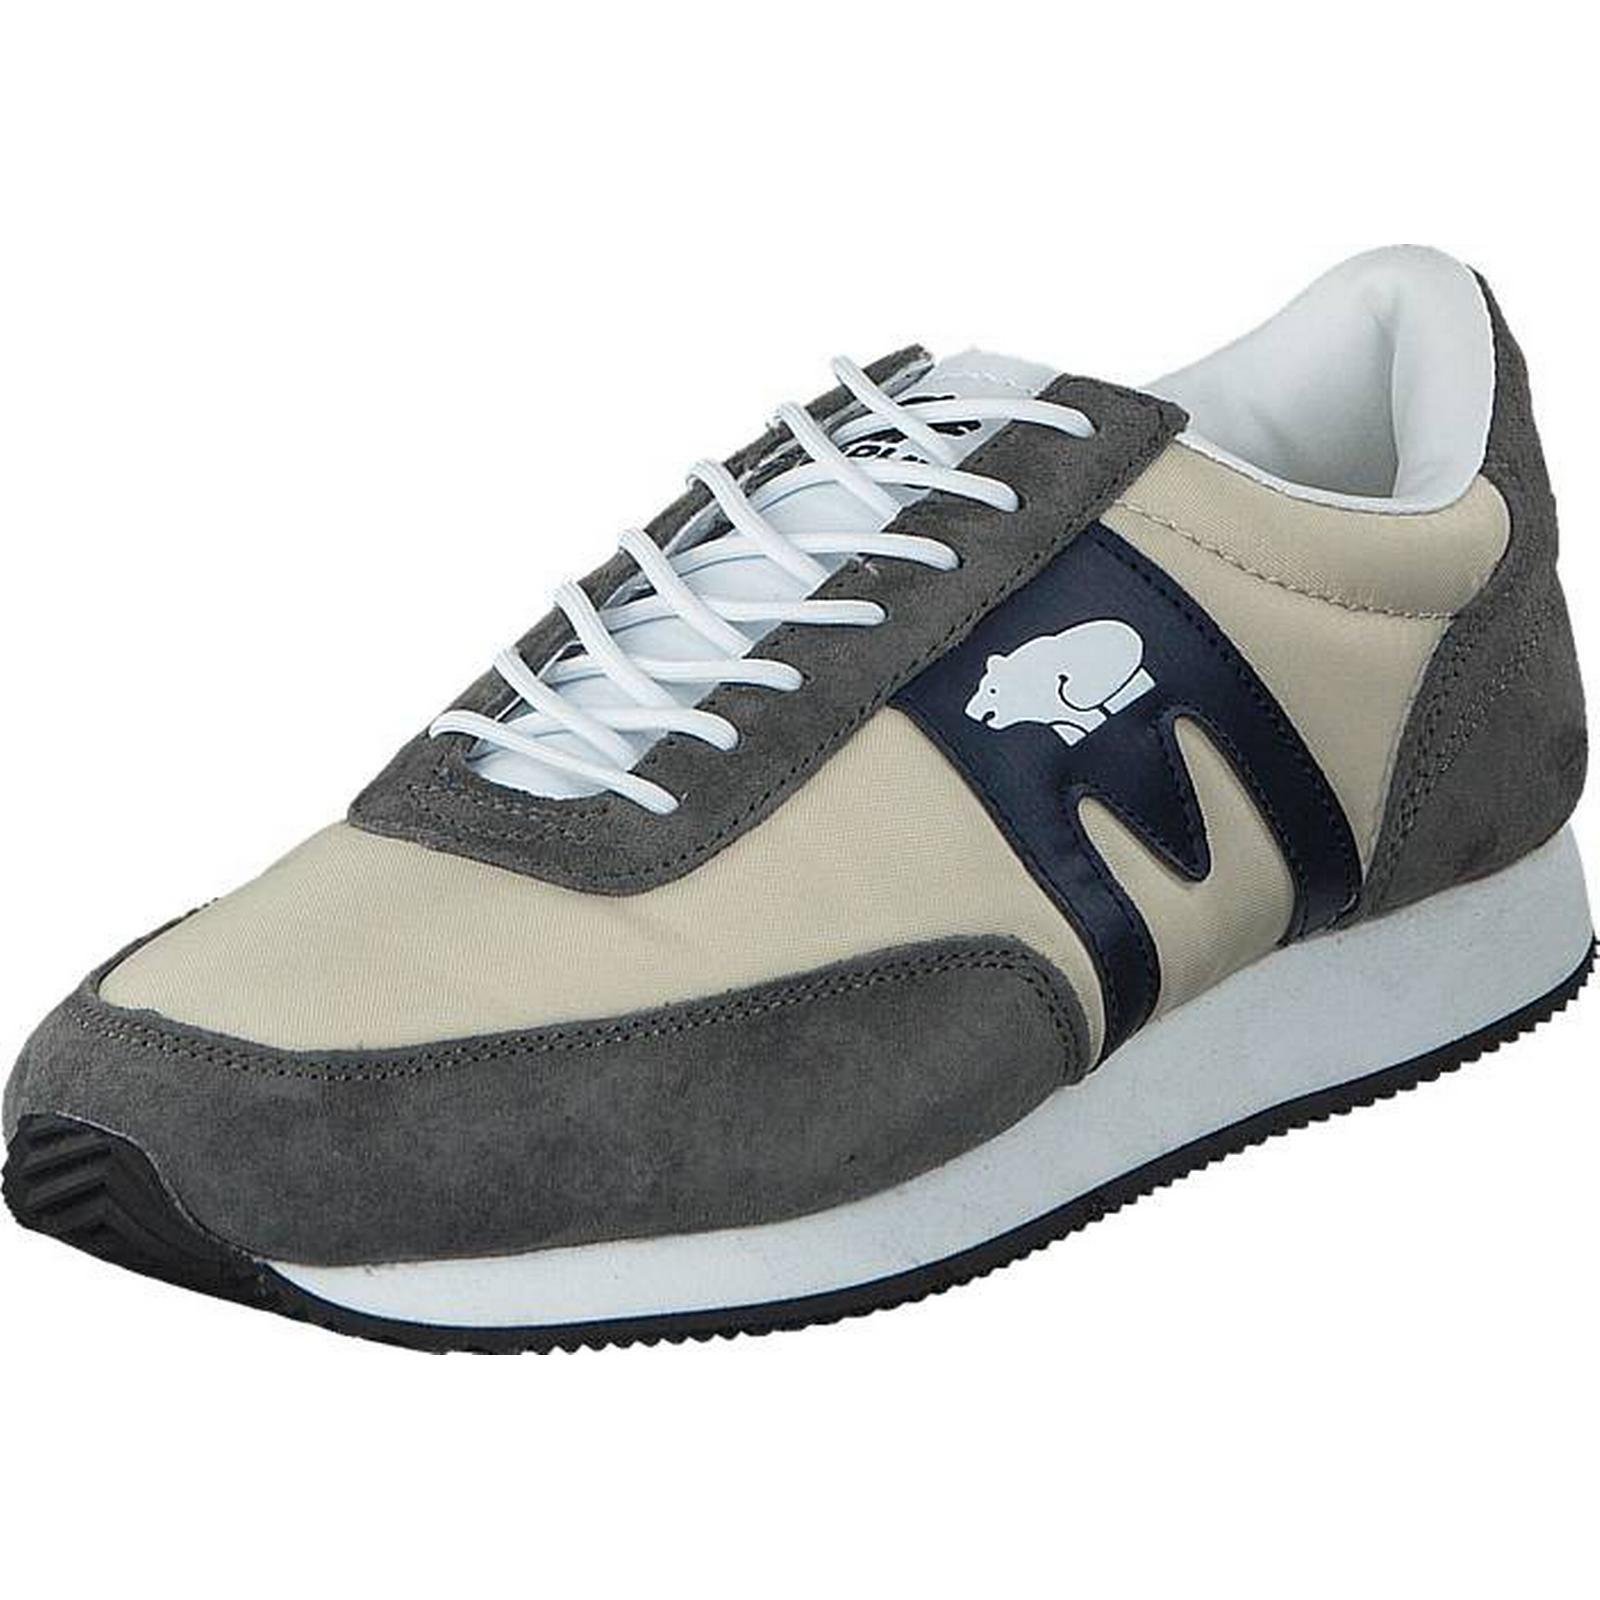 Karhu Albatross Grey/Navy, Shoes, Shoes, Grey/Navy, Trainers & Sport Shoes , Trainers, Beige, Grey, Unisex, 41 2a7aa6